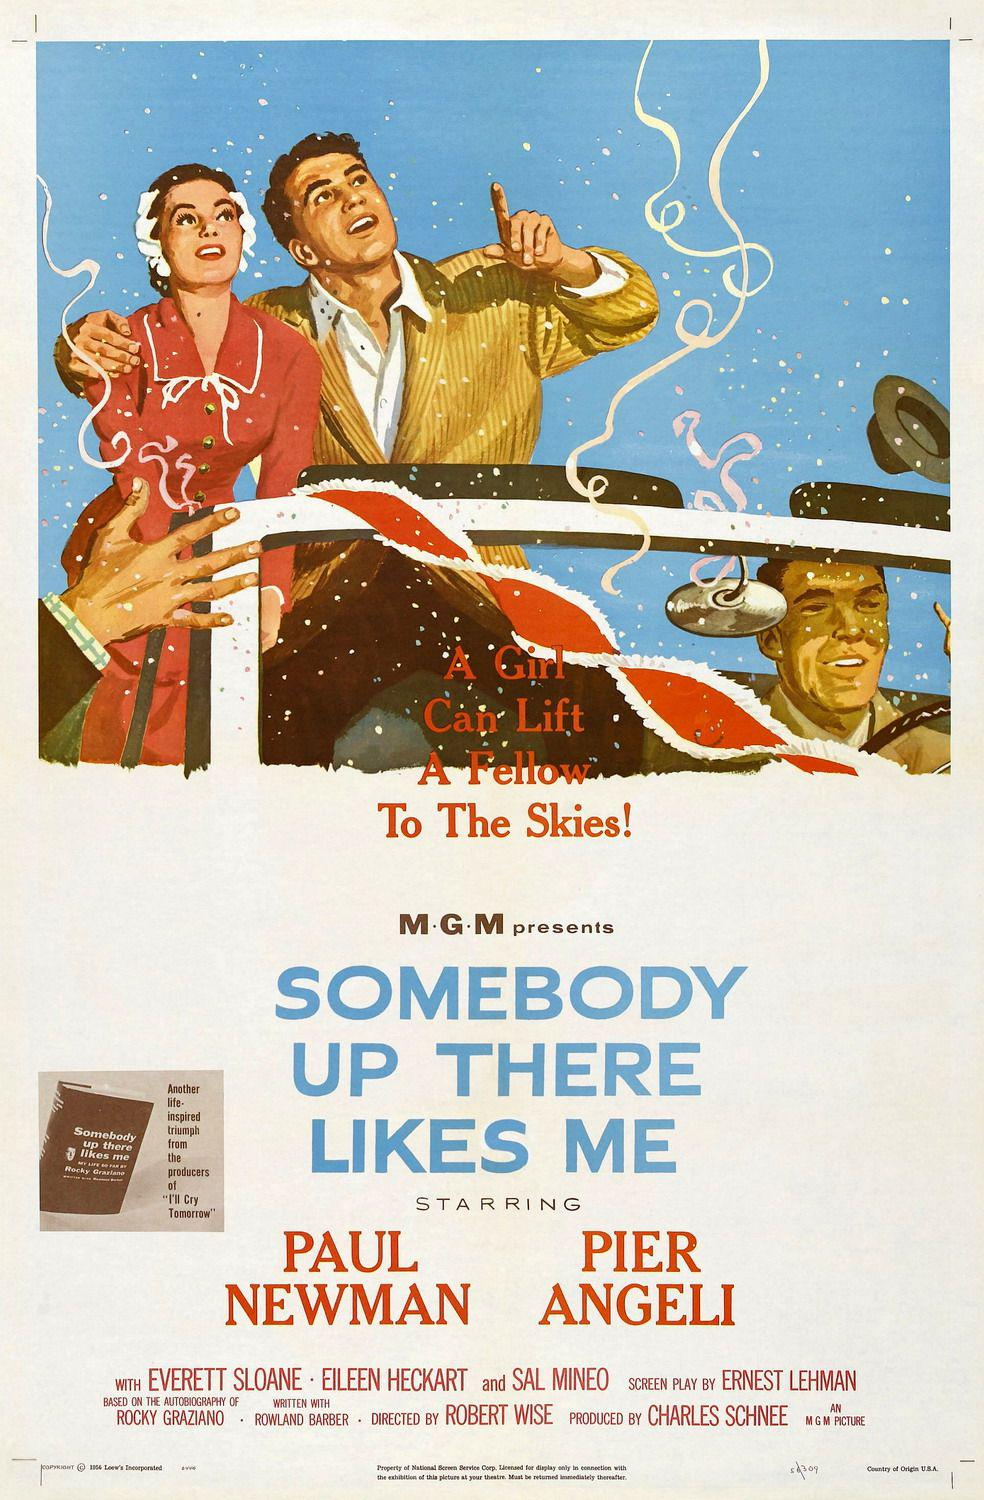 Film - Somebody up there likes me - Lassù qualcuno mi ama - Paul Newman